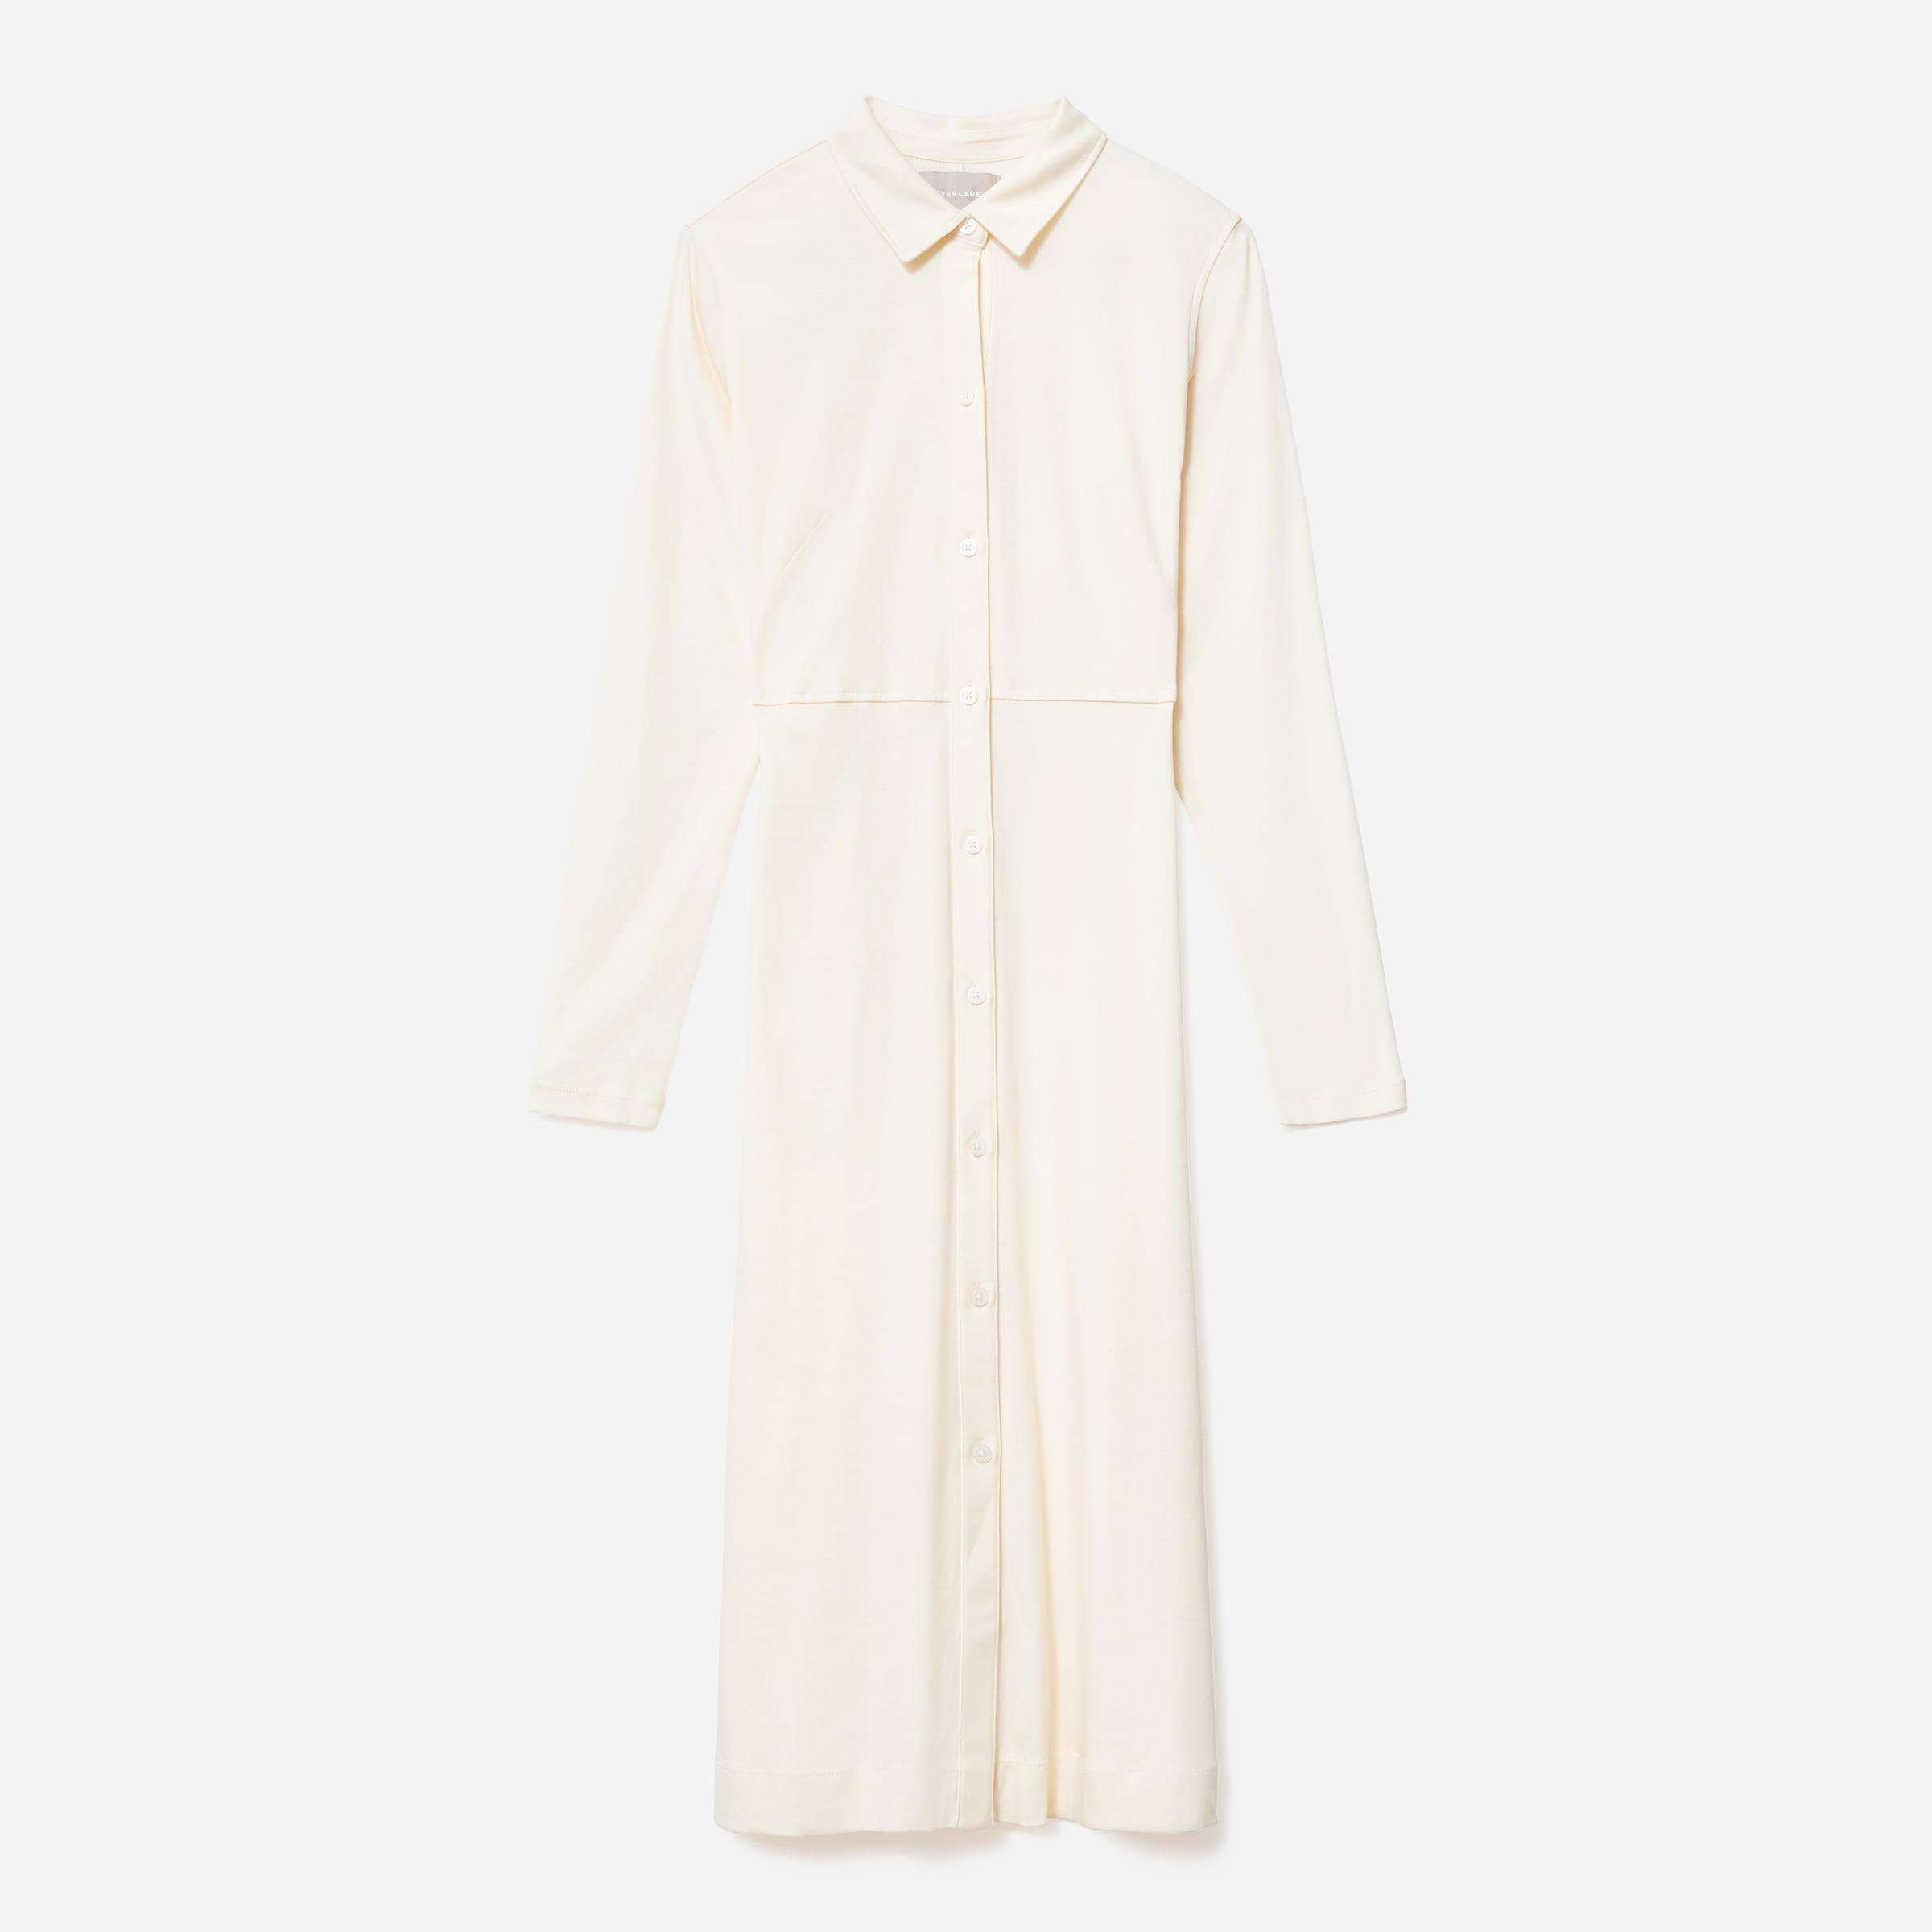 The Luxe Cotton Shirtdress 4